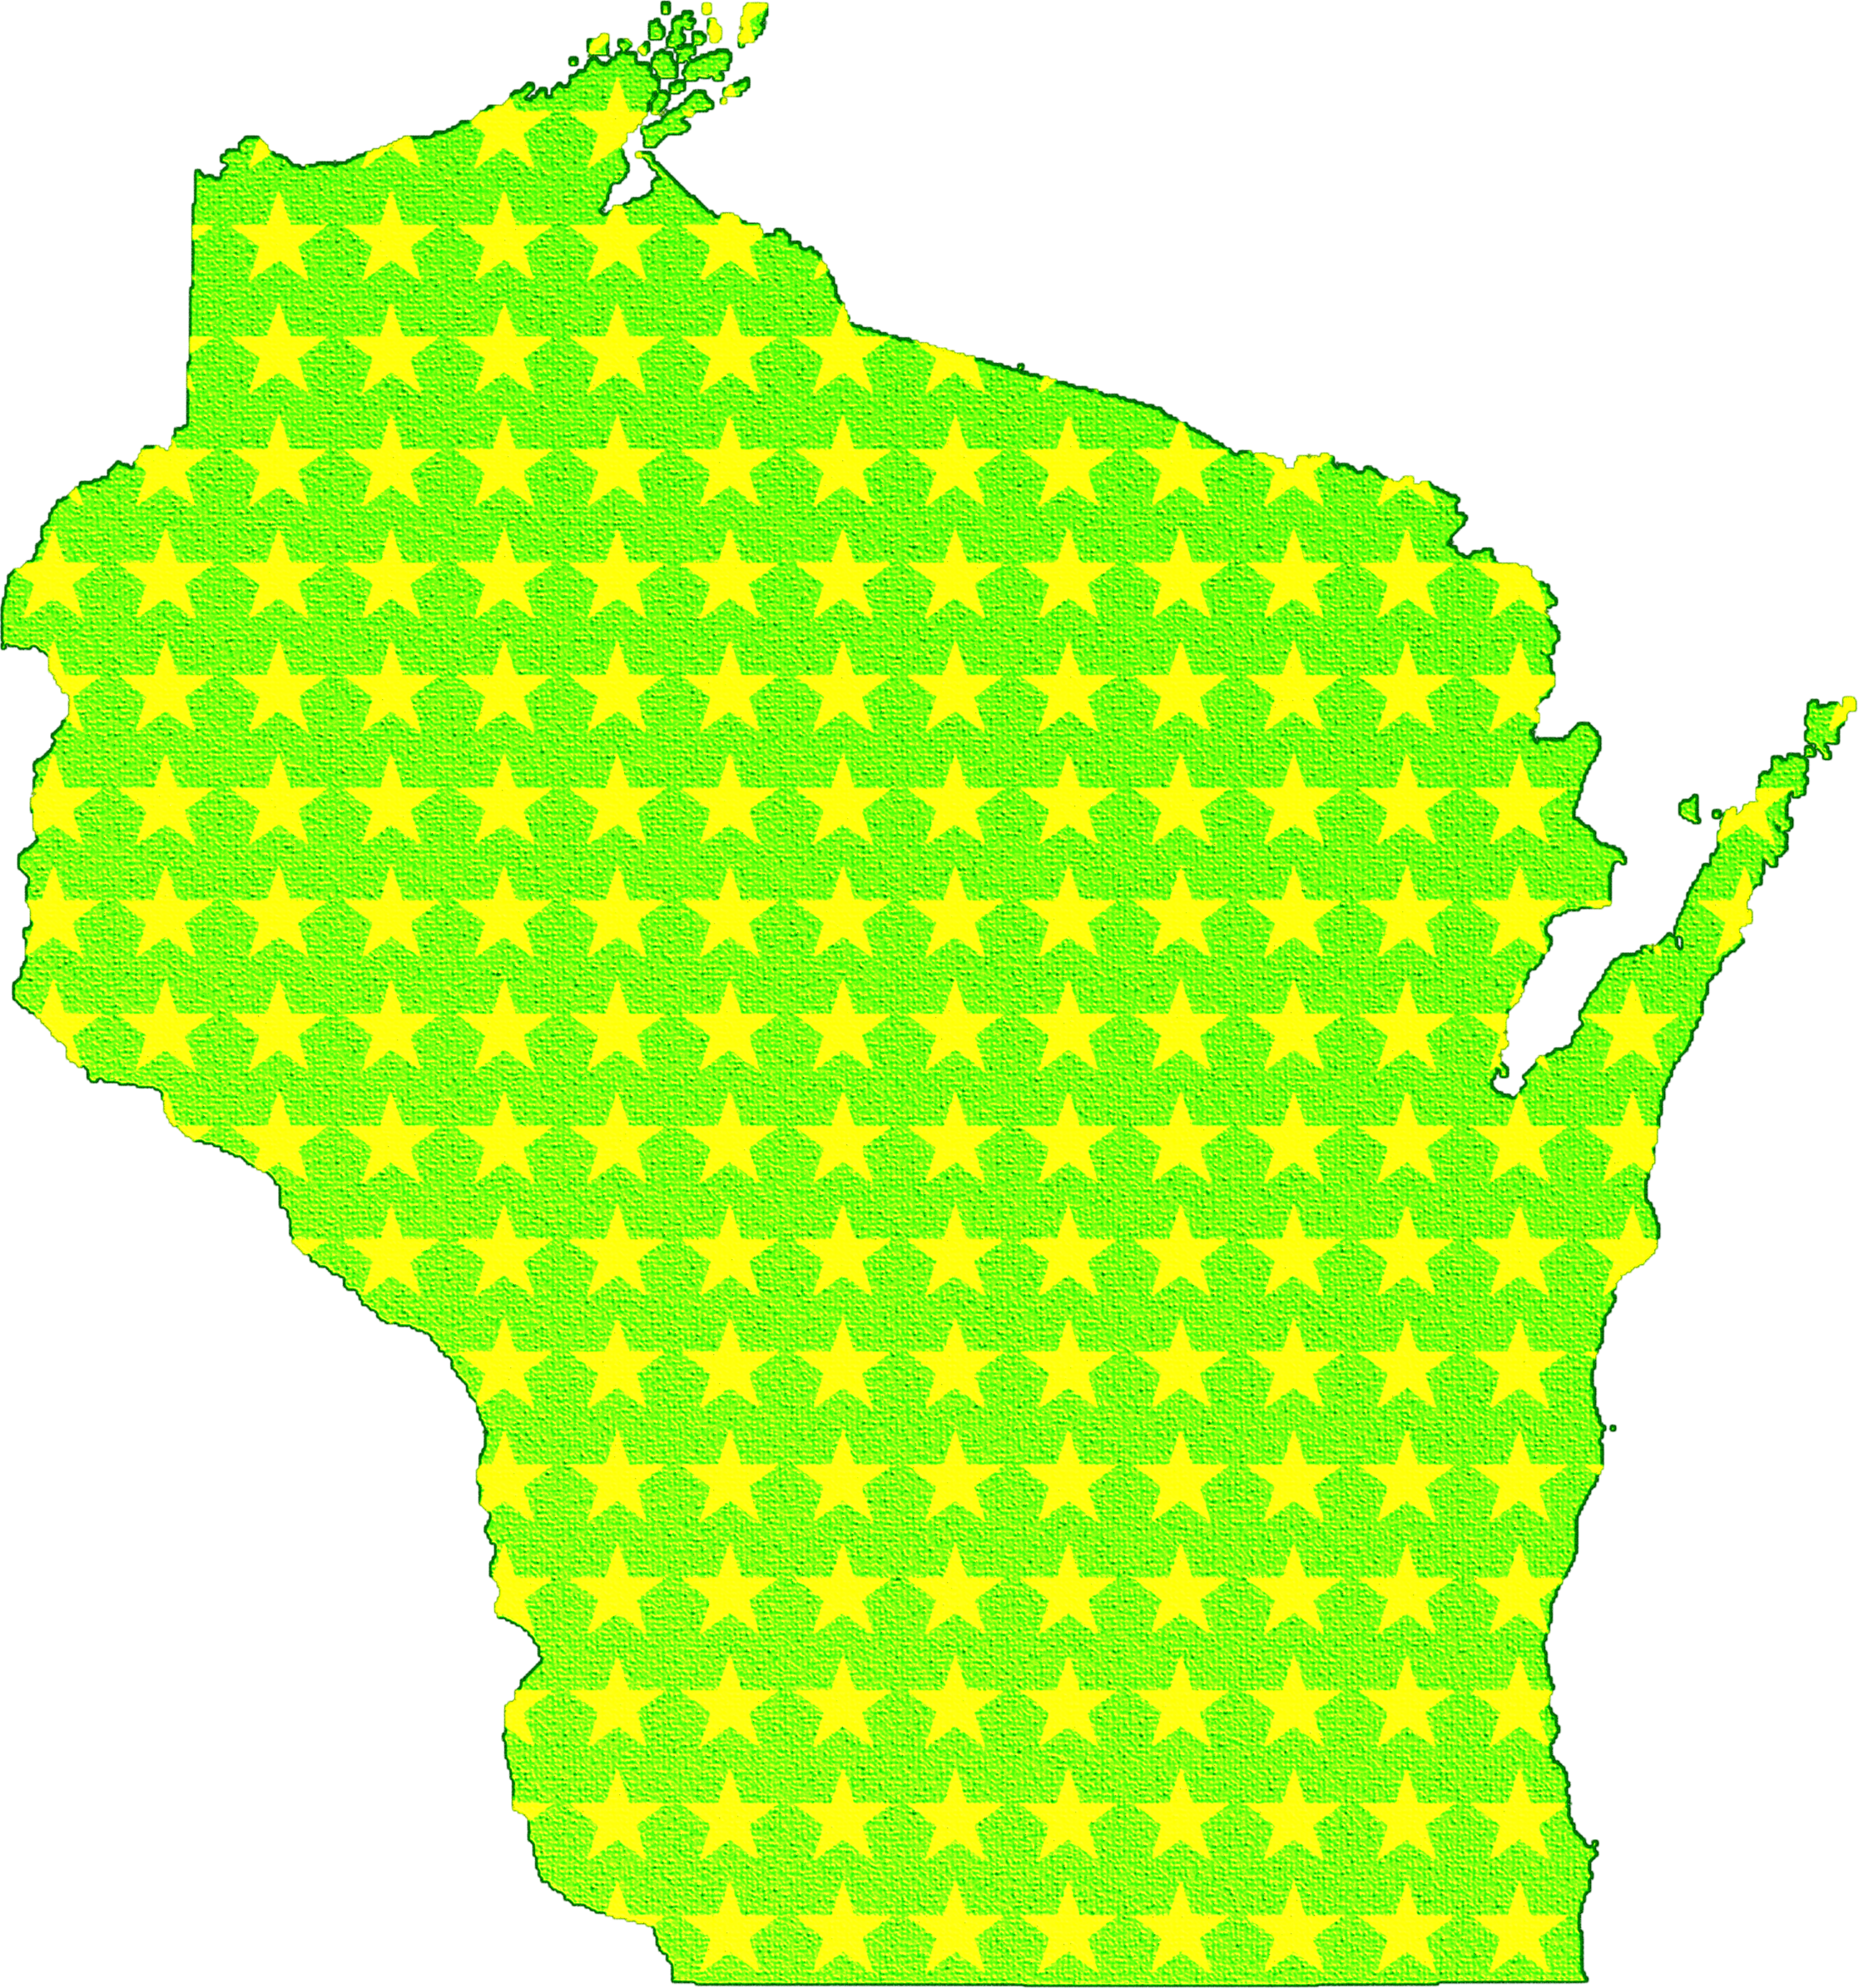 Stars of the State of Wisconsin by AdamStanislav